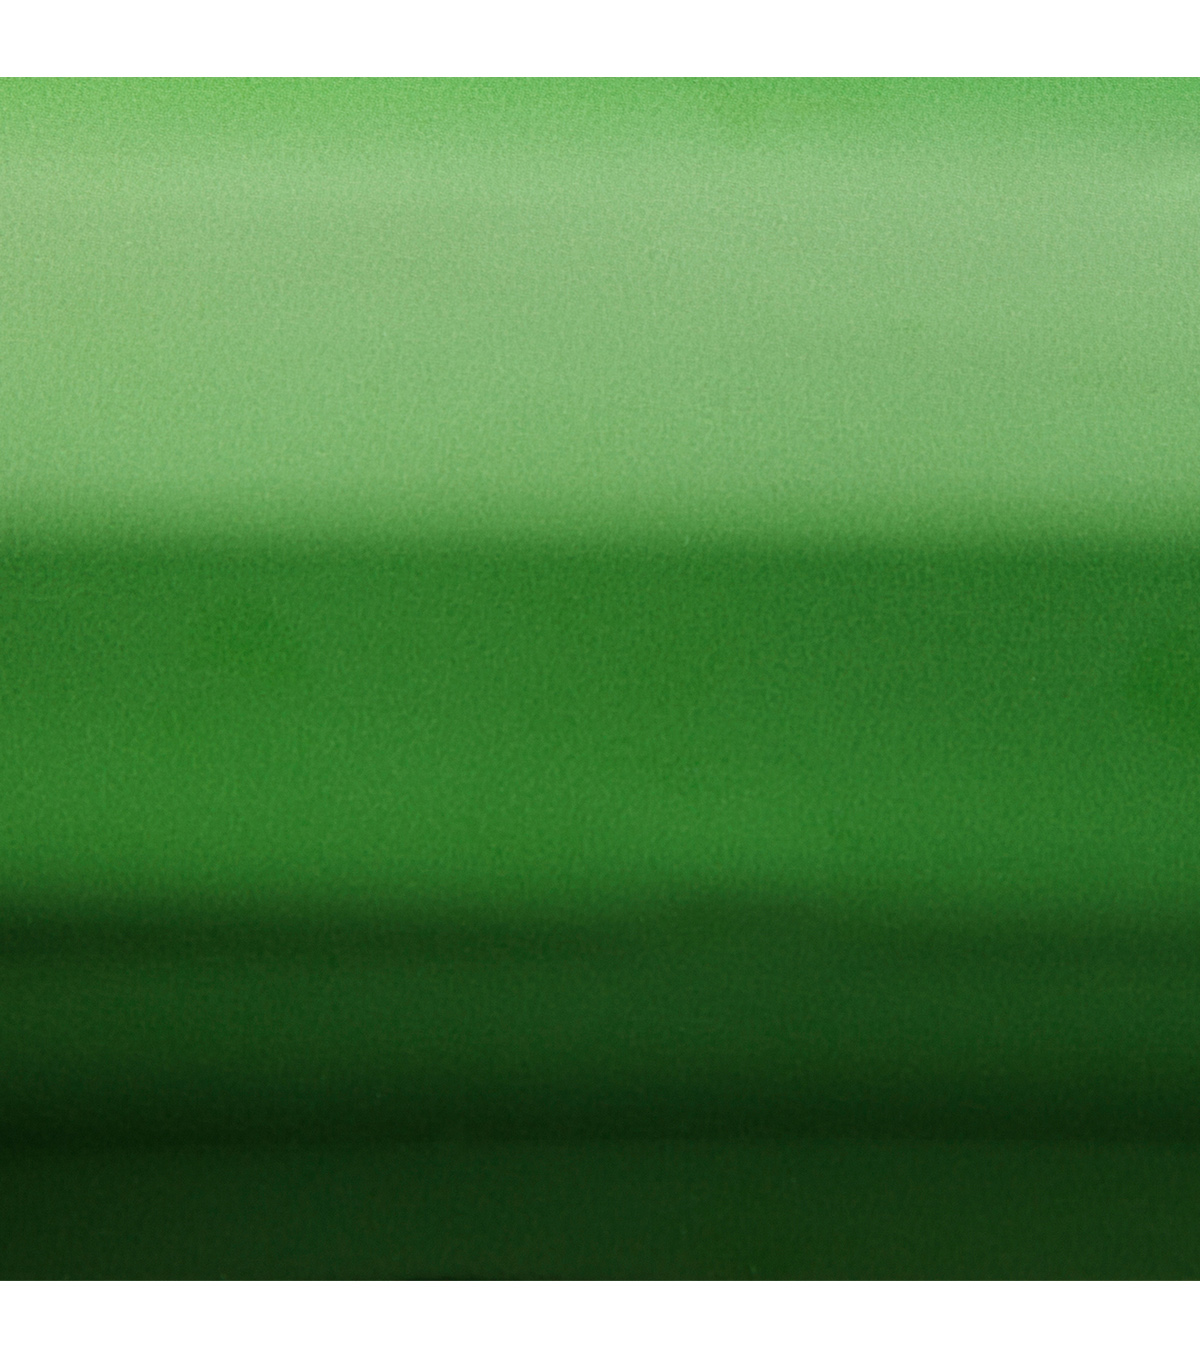 Cricut 12\u0022x24\u0022 Foil Iron-On, Emerald Green